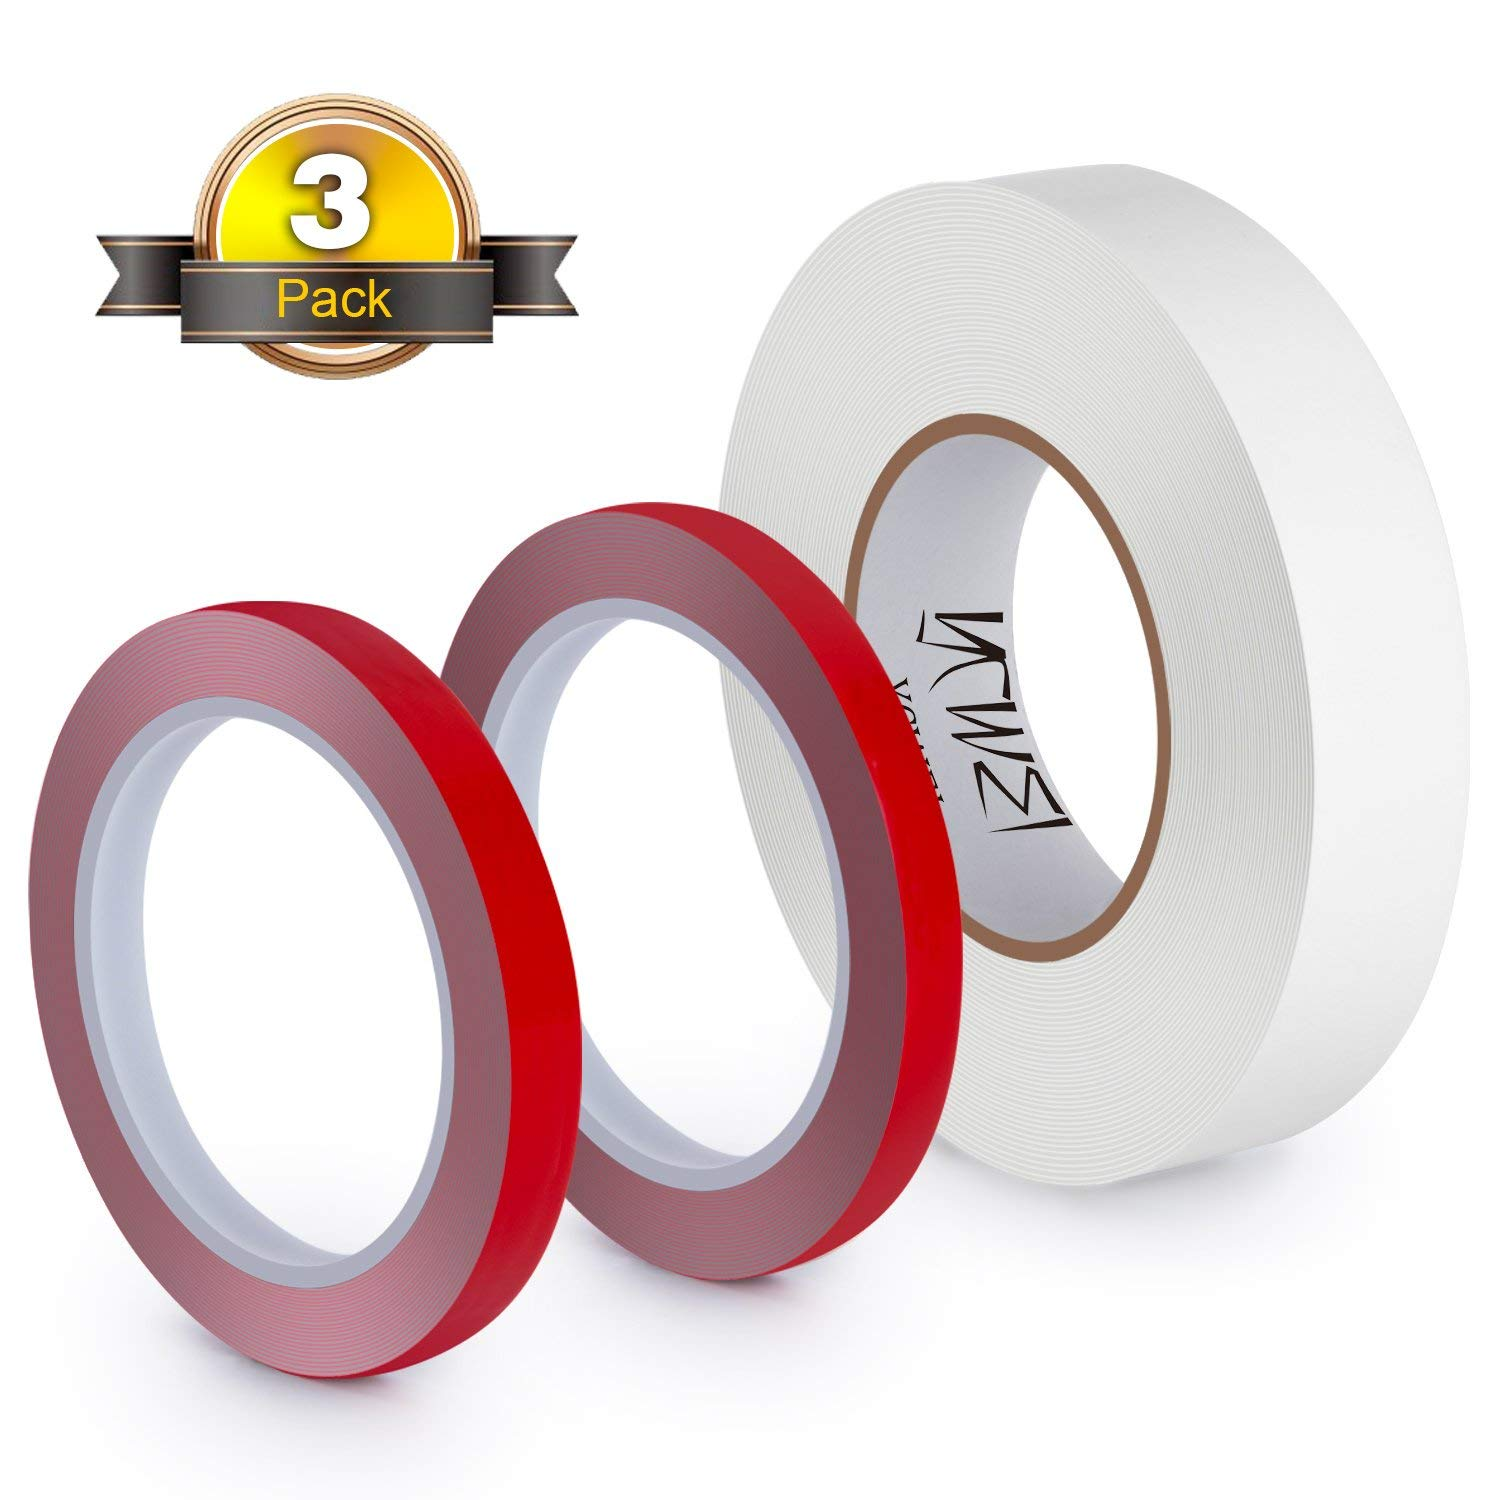 Double Sided Mounting Tape,3 Set Combo Kit-Foam Tape(1.2Inx11 Yd),Gray Clear(0.4 In X 3.25 Yd),1/25 Thickness,Heavy Duty Double-Sided Wall Mount Self Adhesive And Tough Bonding Strength Removable